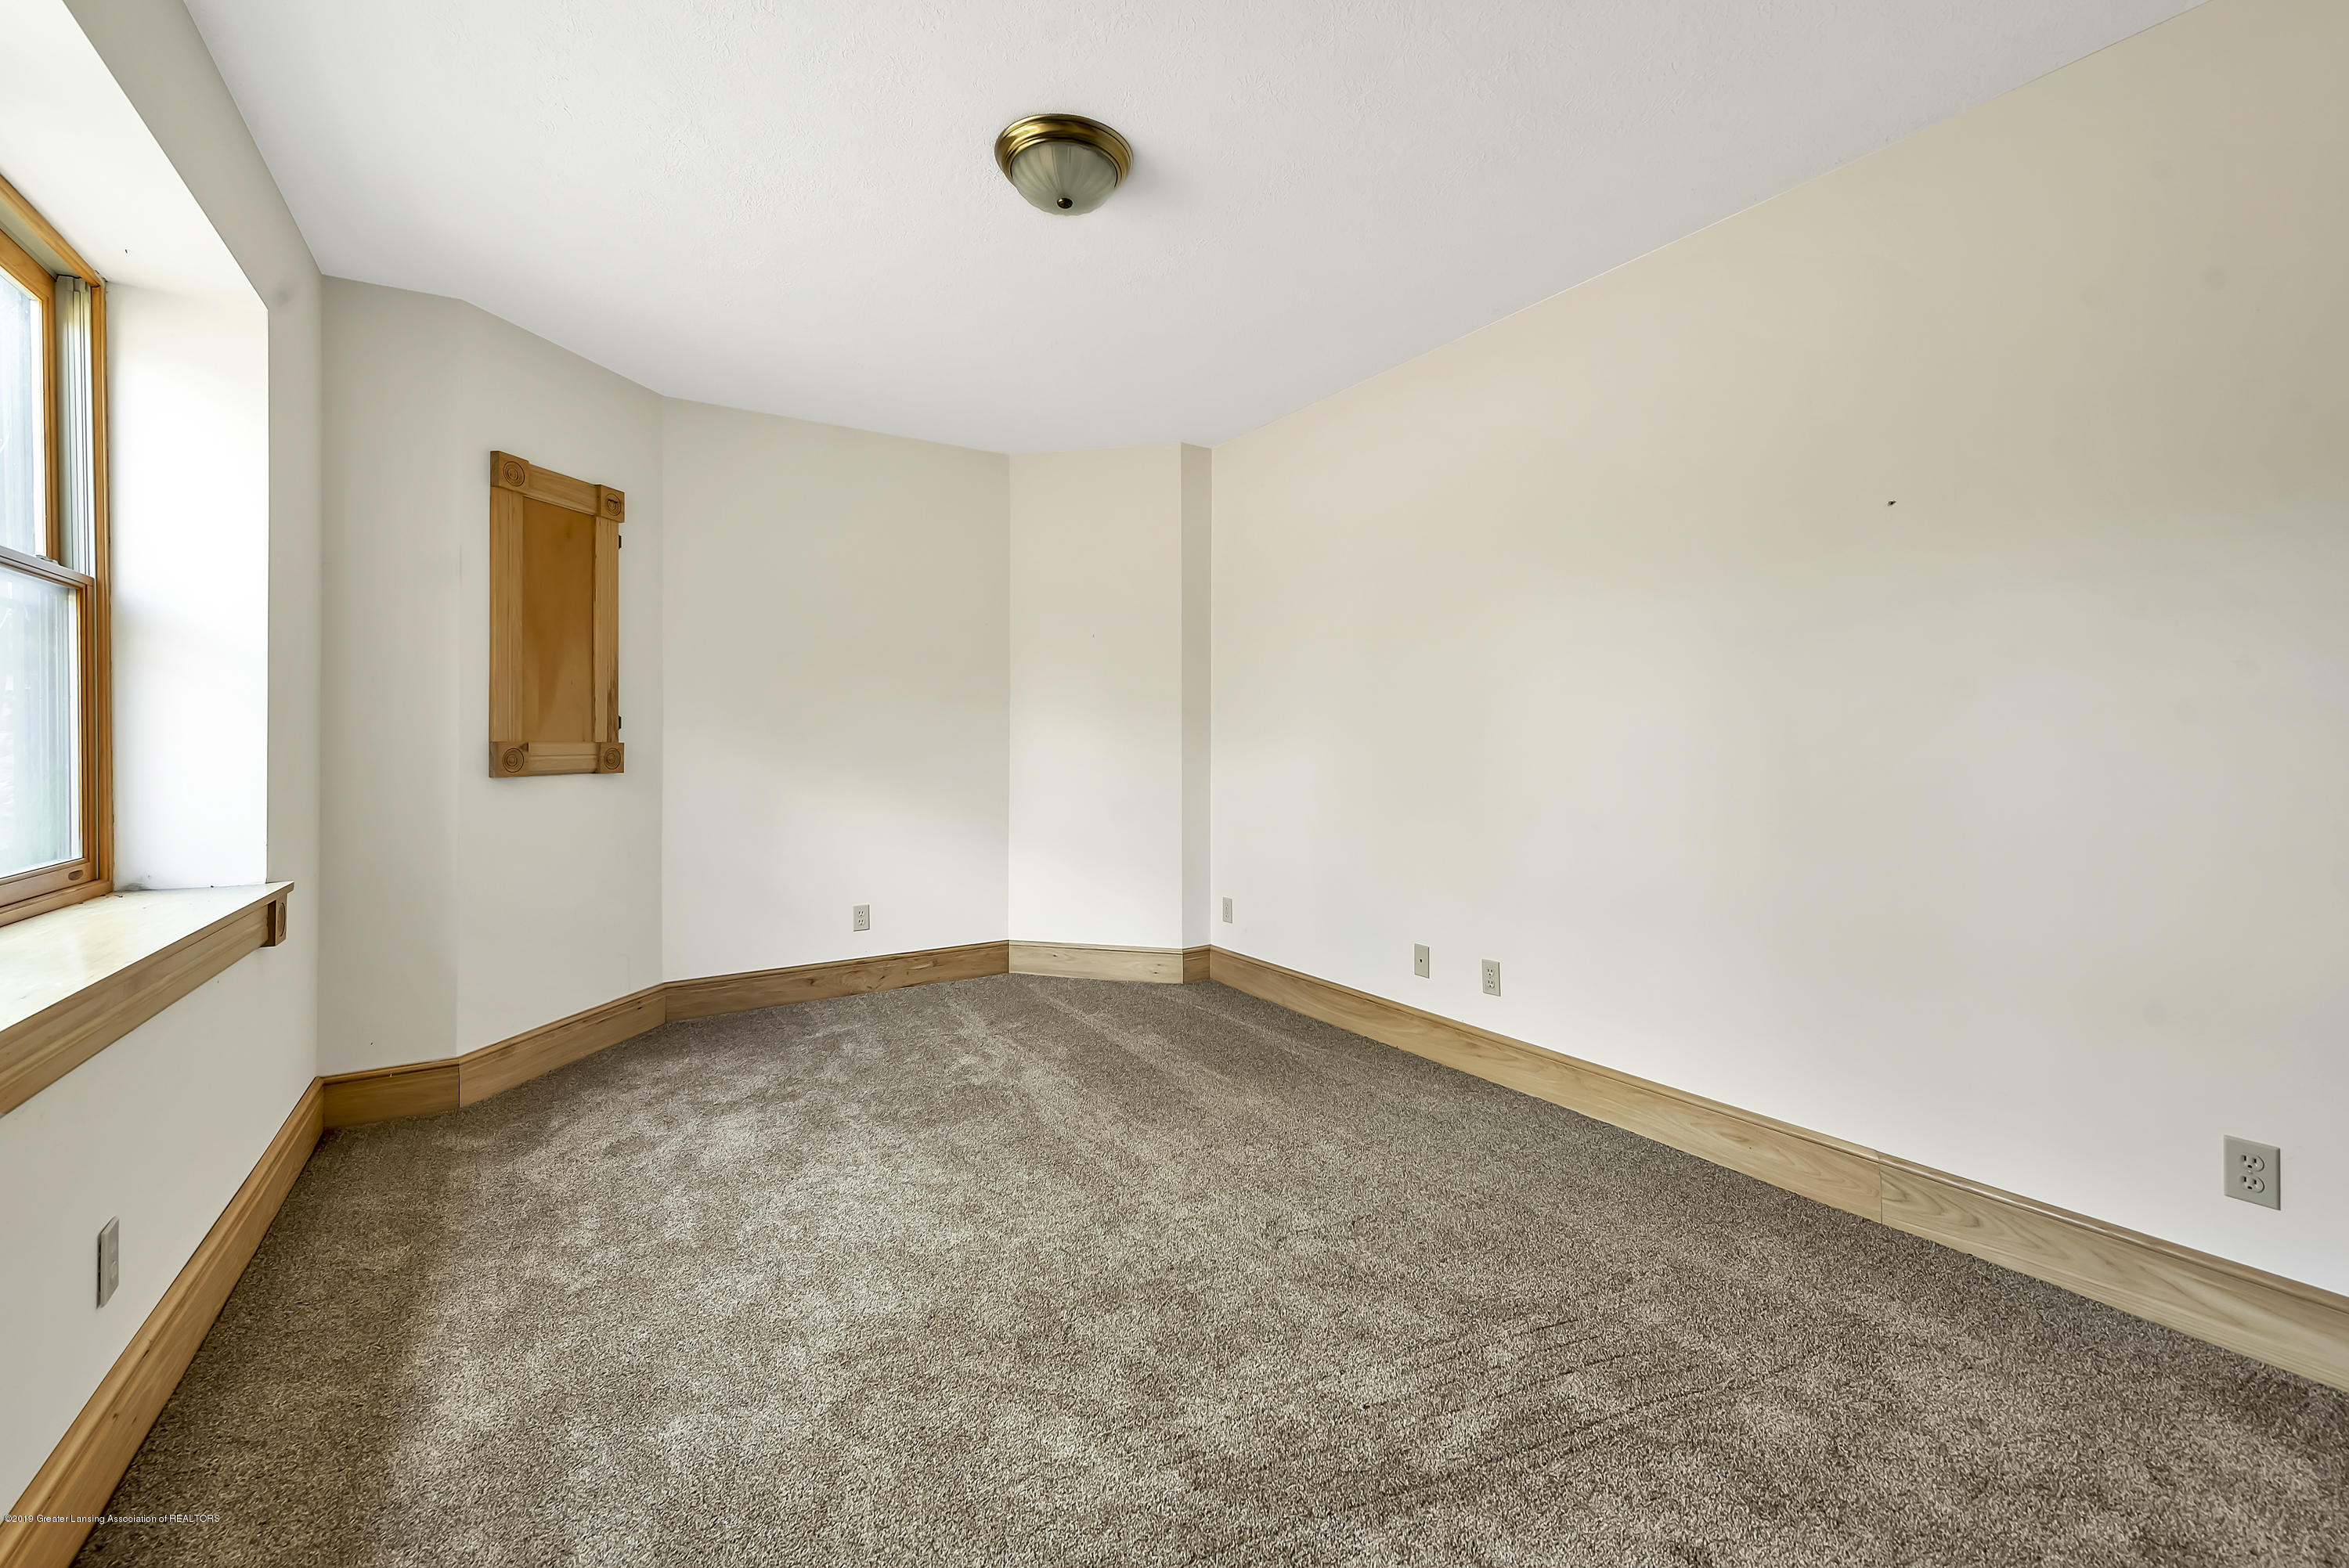 10865 Barnes Rd - 10865-Barnes-Rd-WindowStill-Real-Estate- - 31